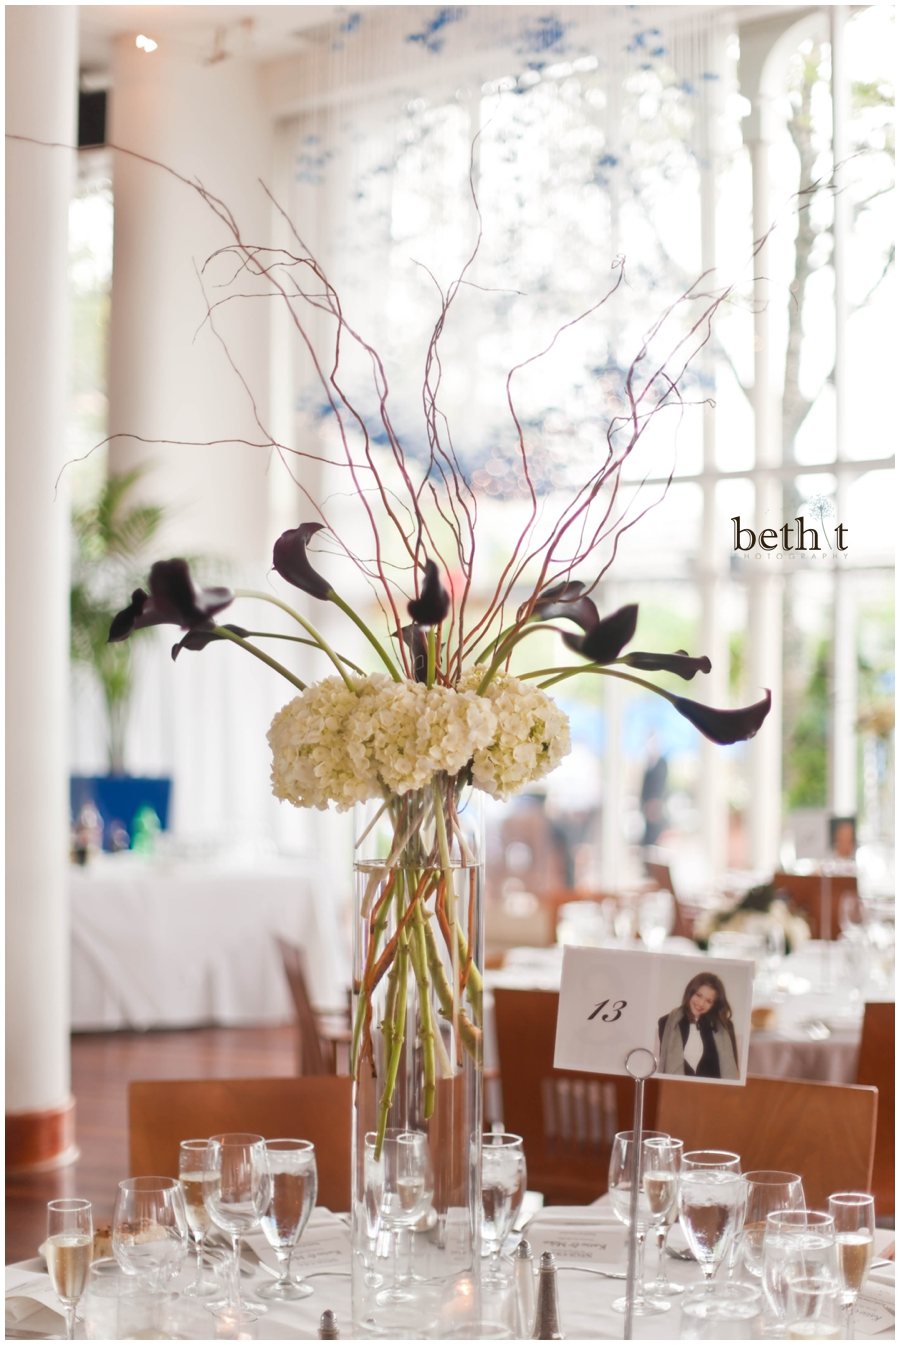 Sweet Blossoms LLC: May 26 wedding at the Sequoia